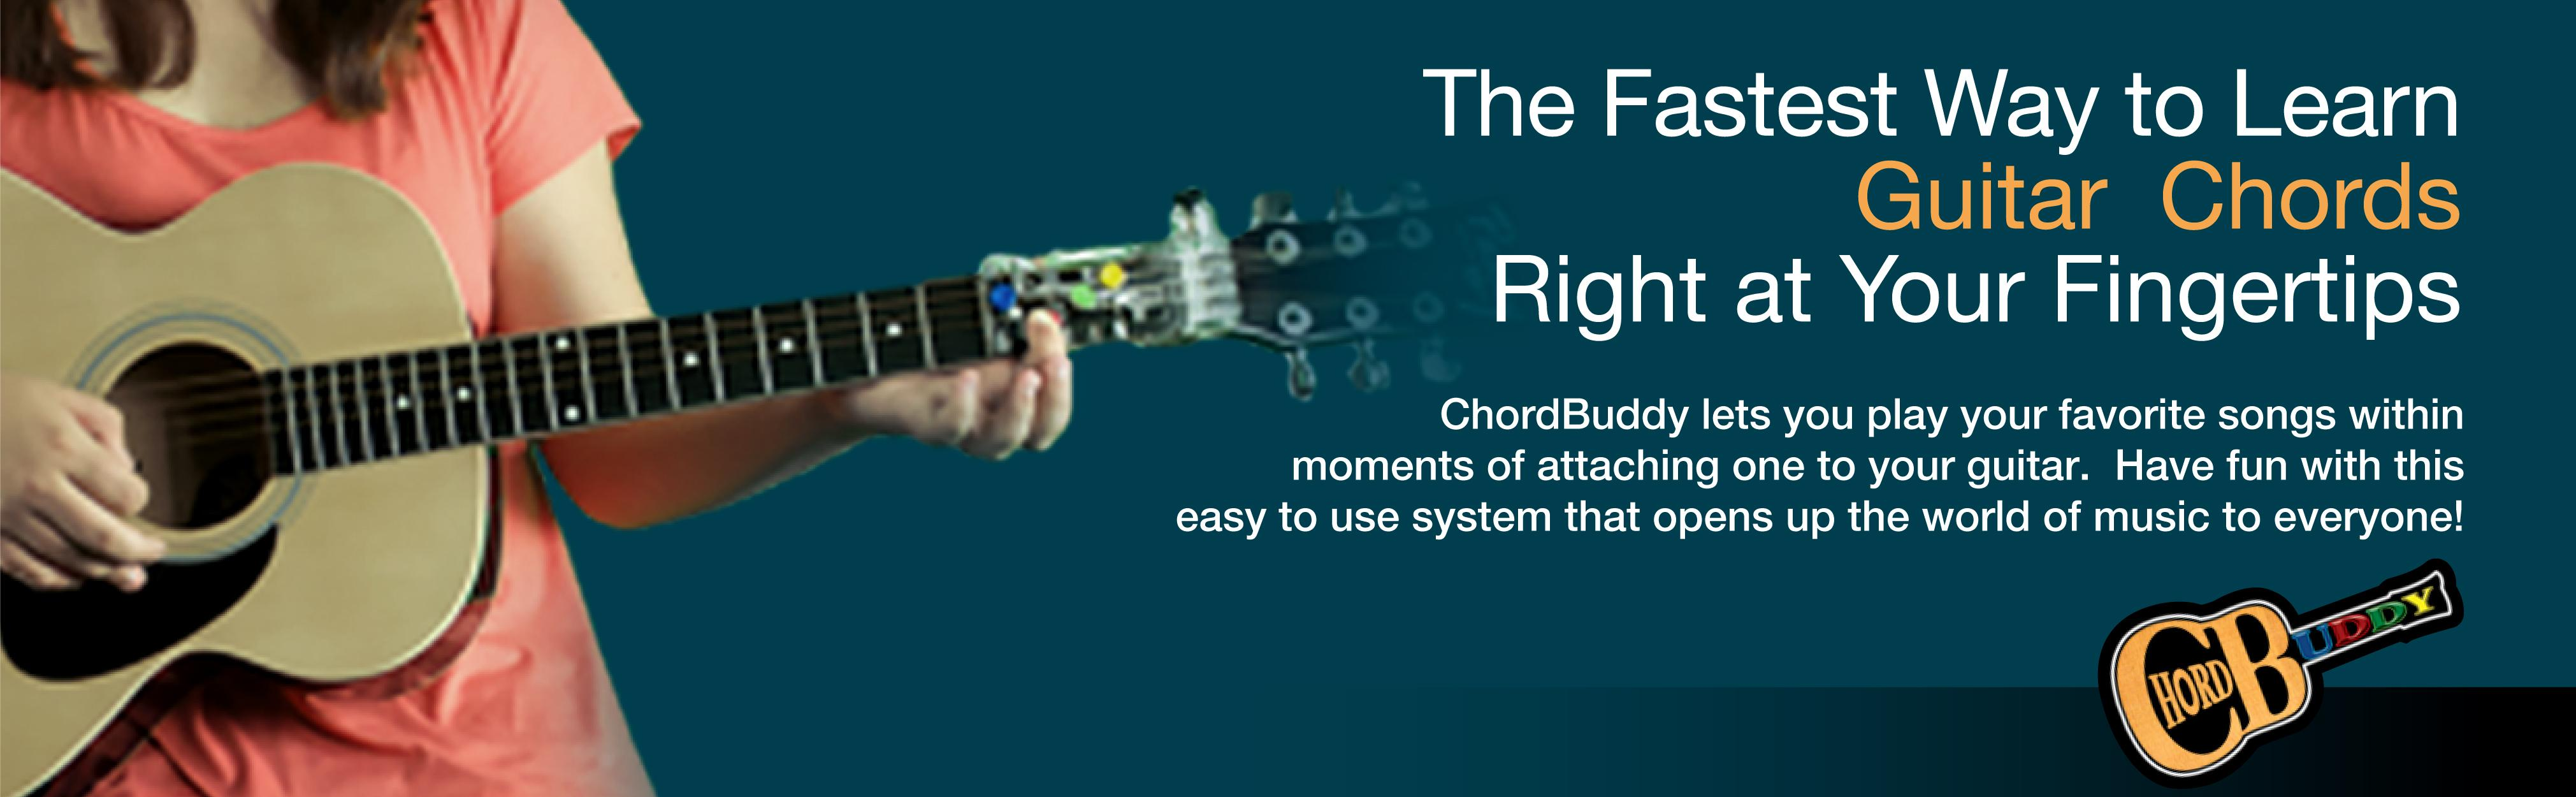 Amazon Chordbuddy Guitar Learning System For Right Handed